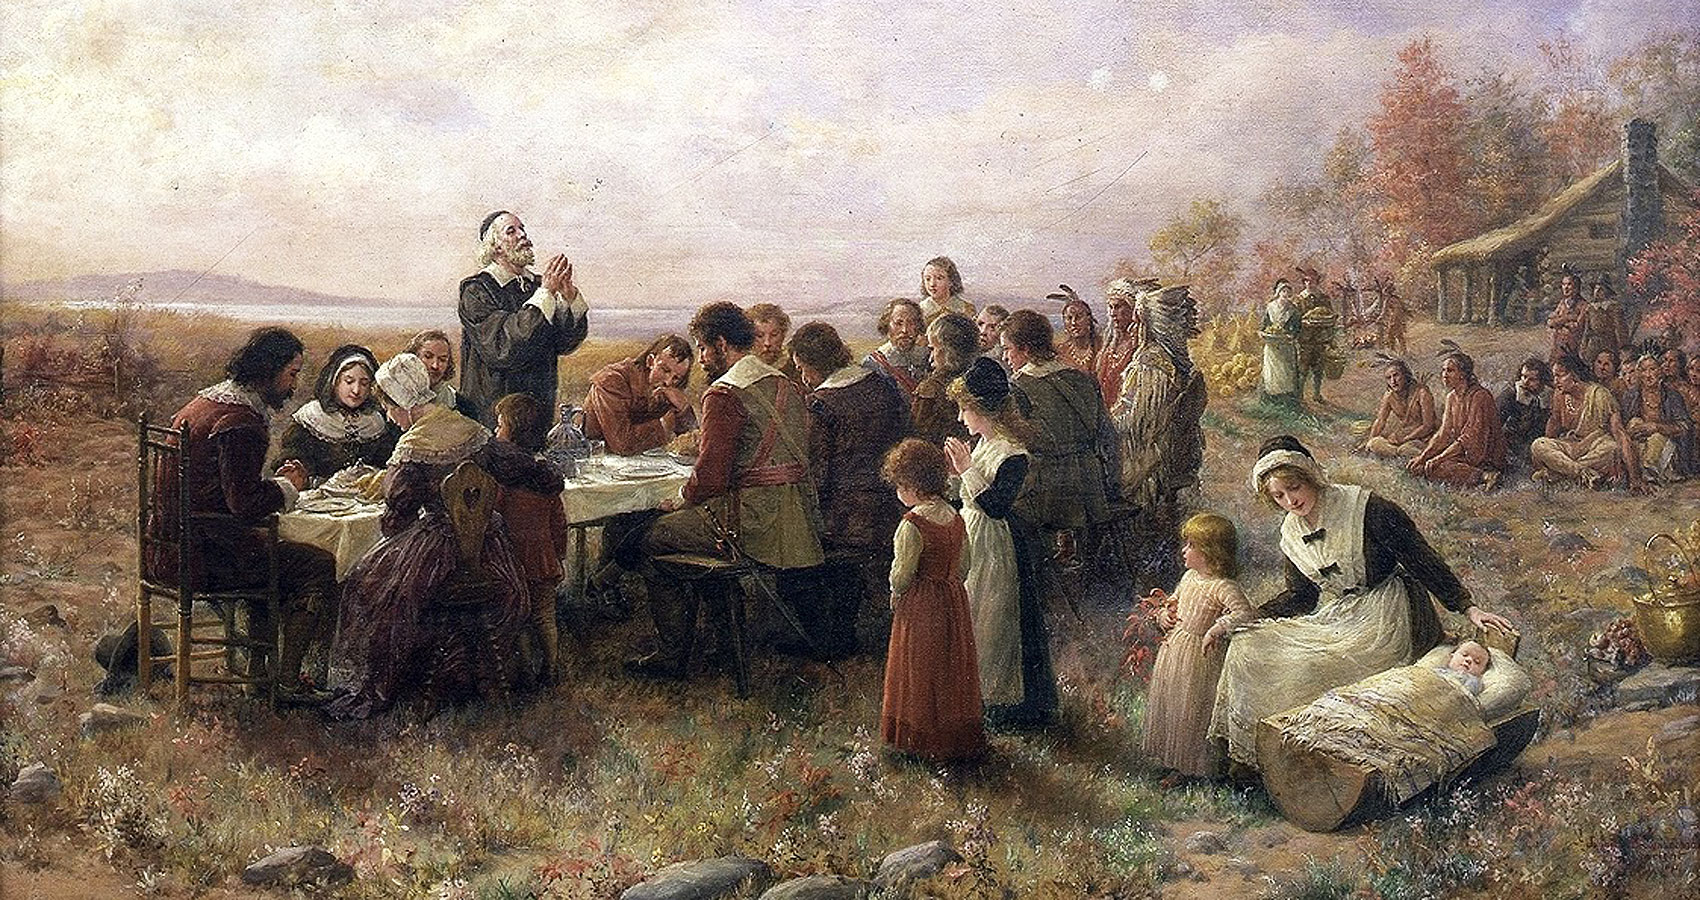 The New-England Boy's Song about Thanksgiving Day written by Lydia Maria Child at Spillwords.com